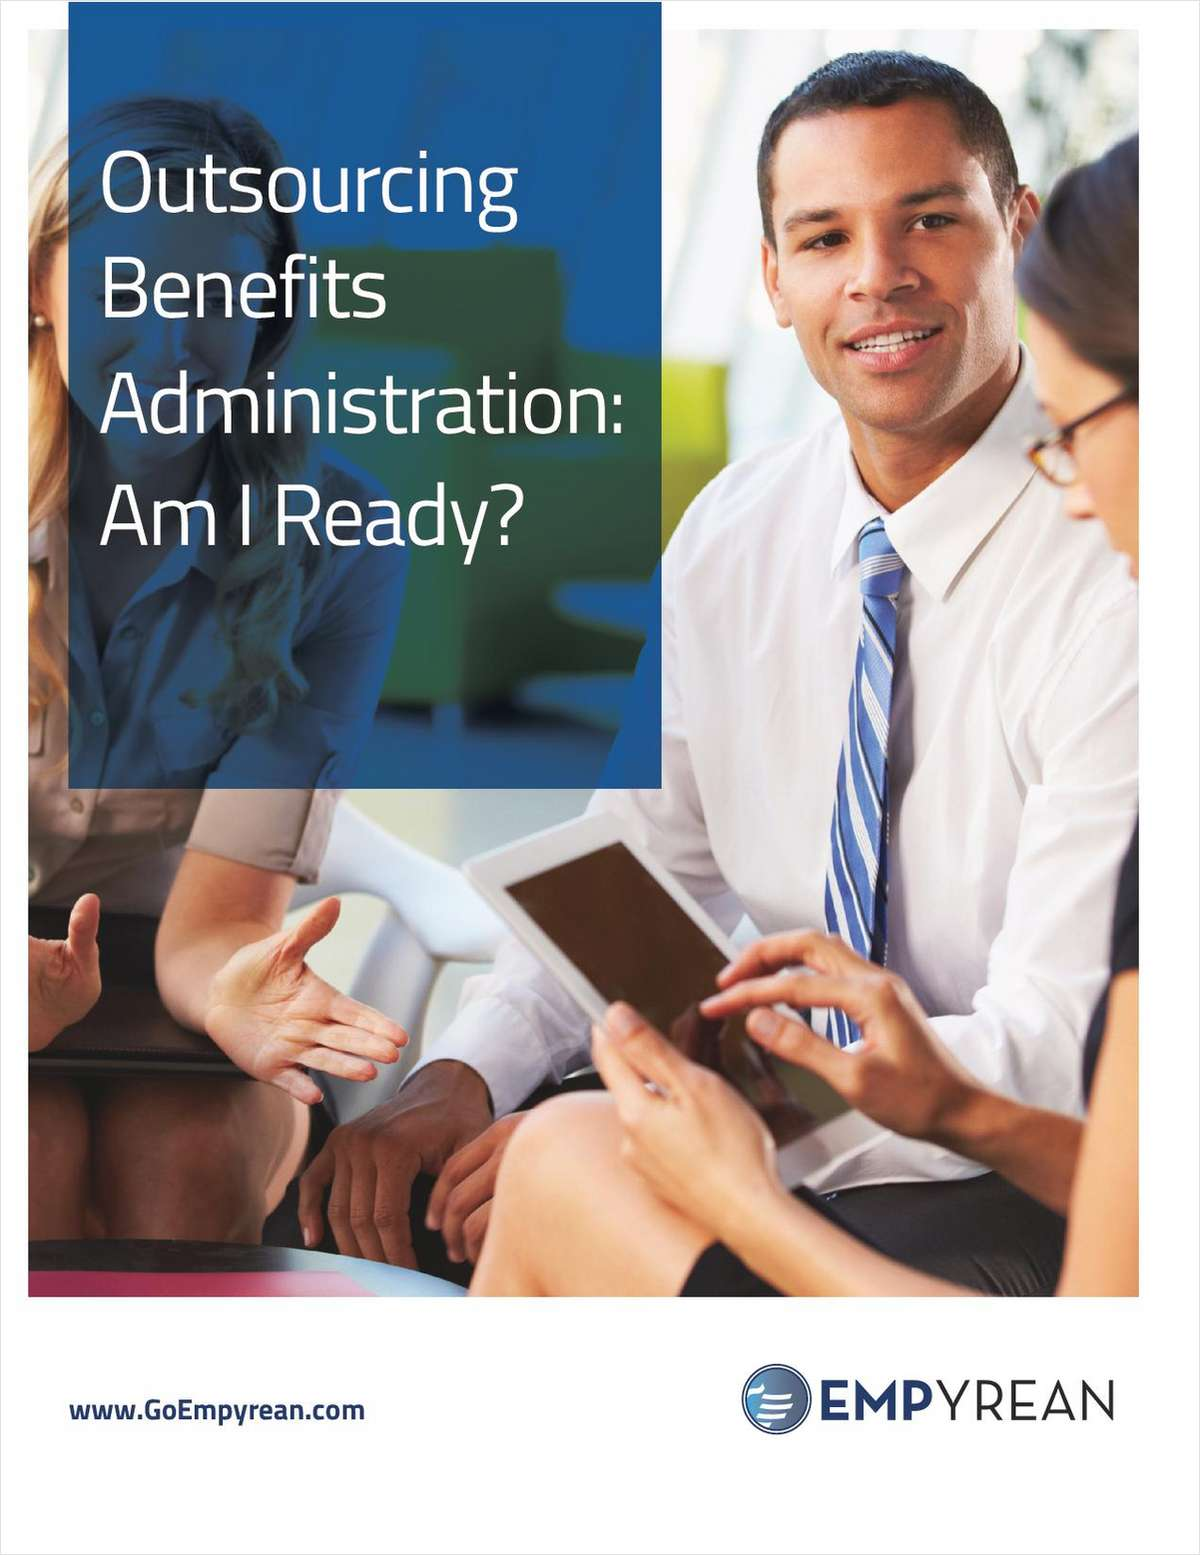 Outsourcing Benefits Administration. Am I Ready?